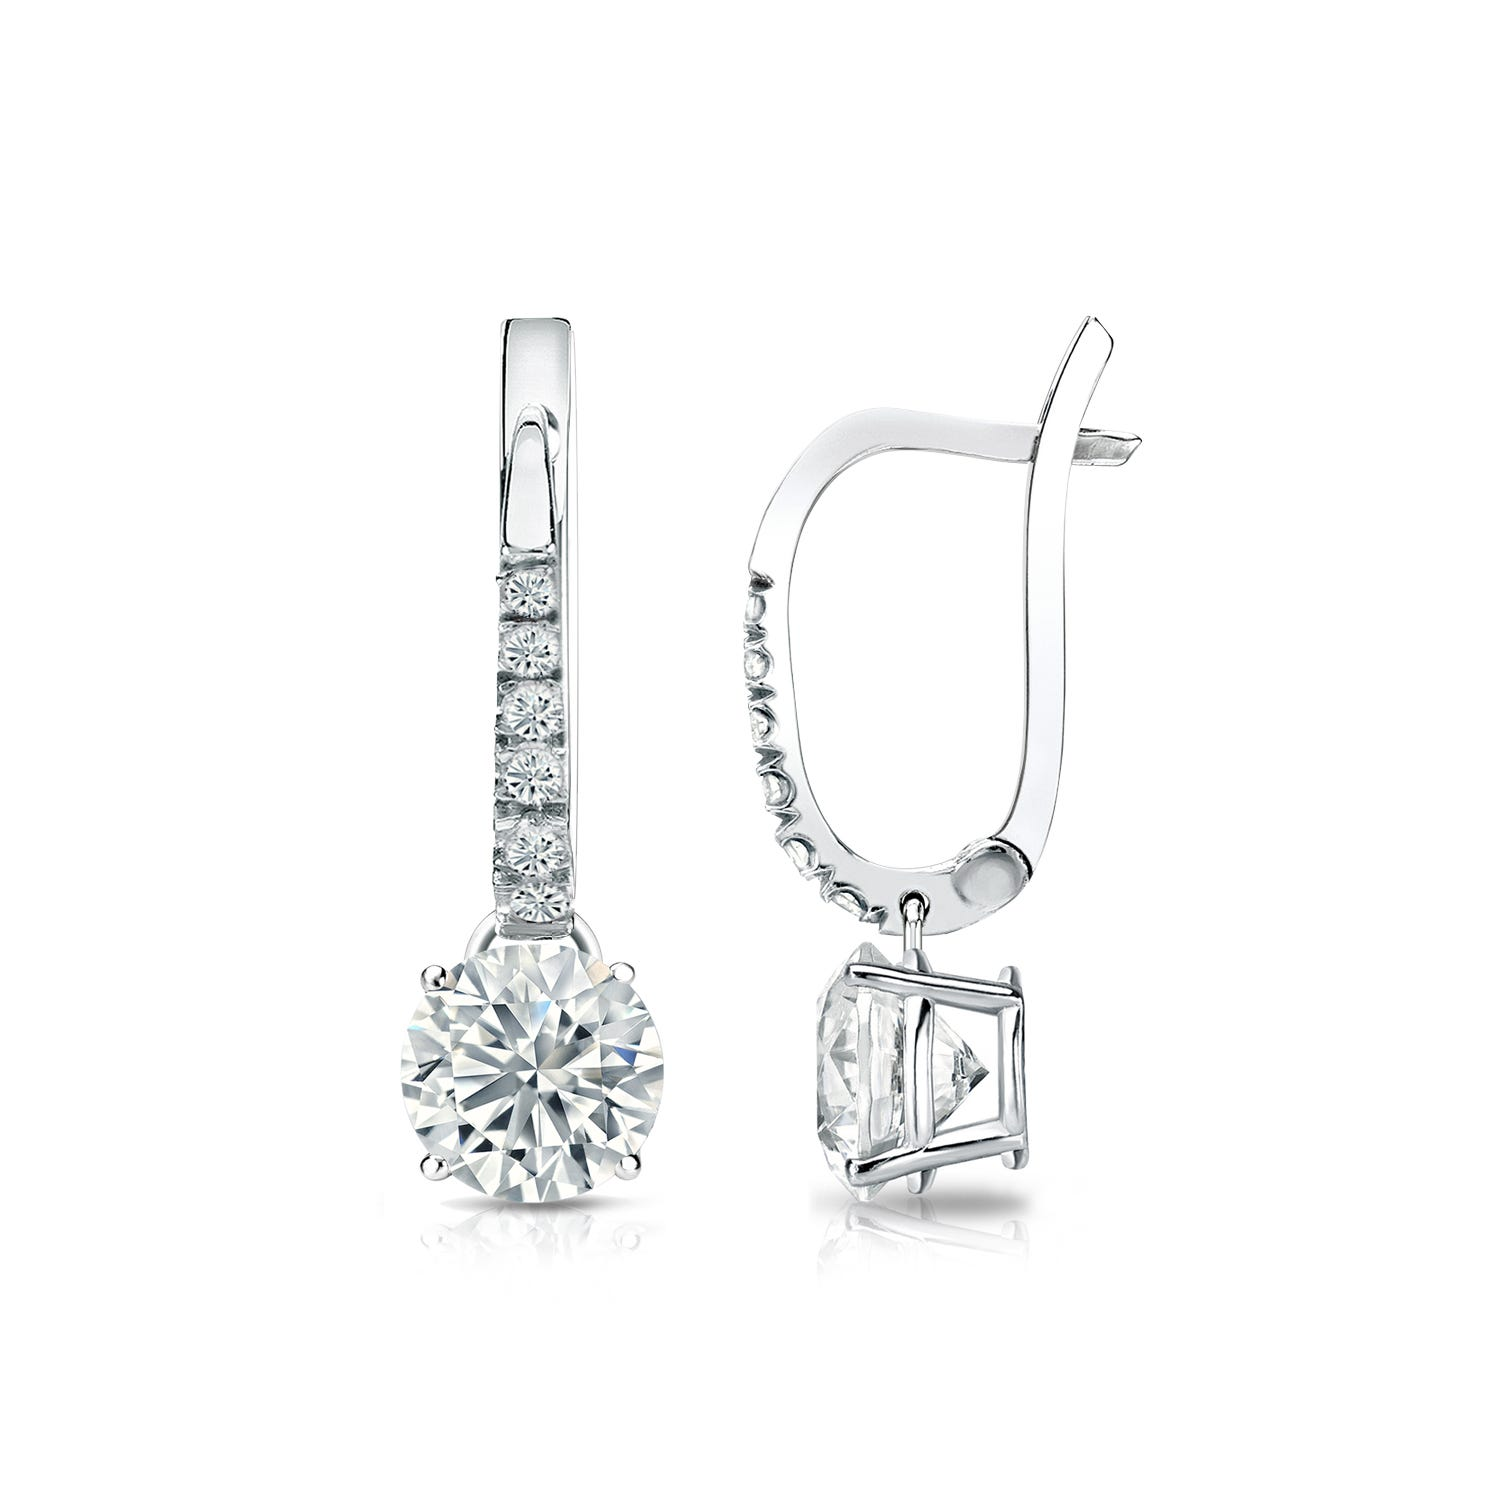 Diamond 1ctw. 4-Prong Round Drop Earrings in Platinum I1 Clarity